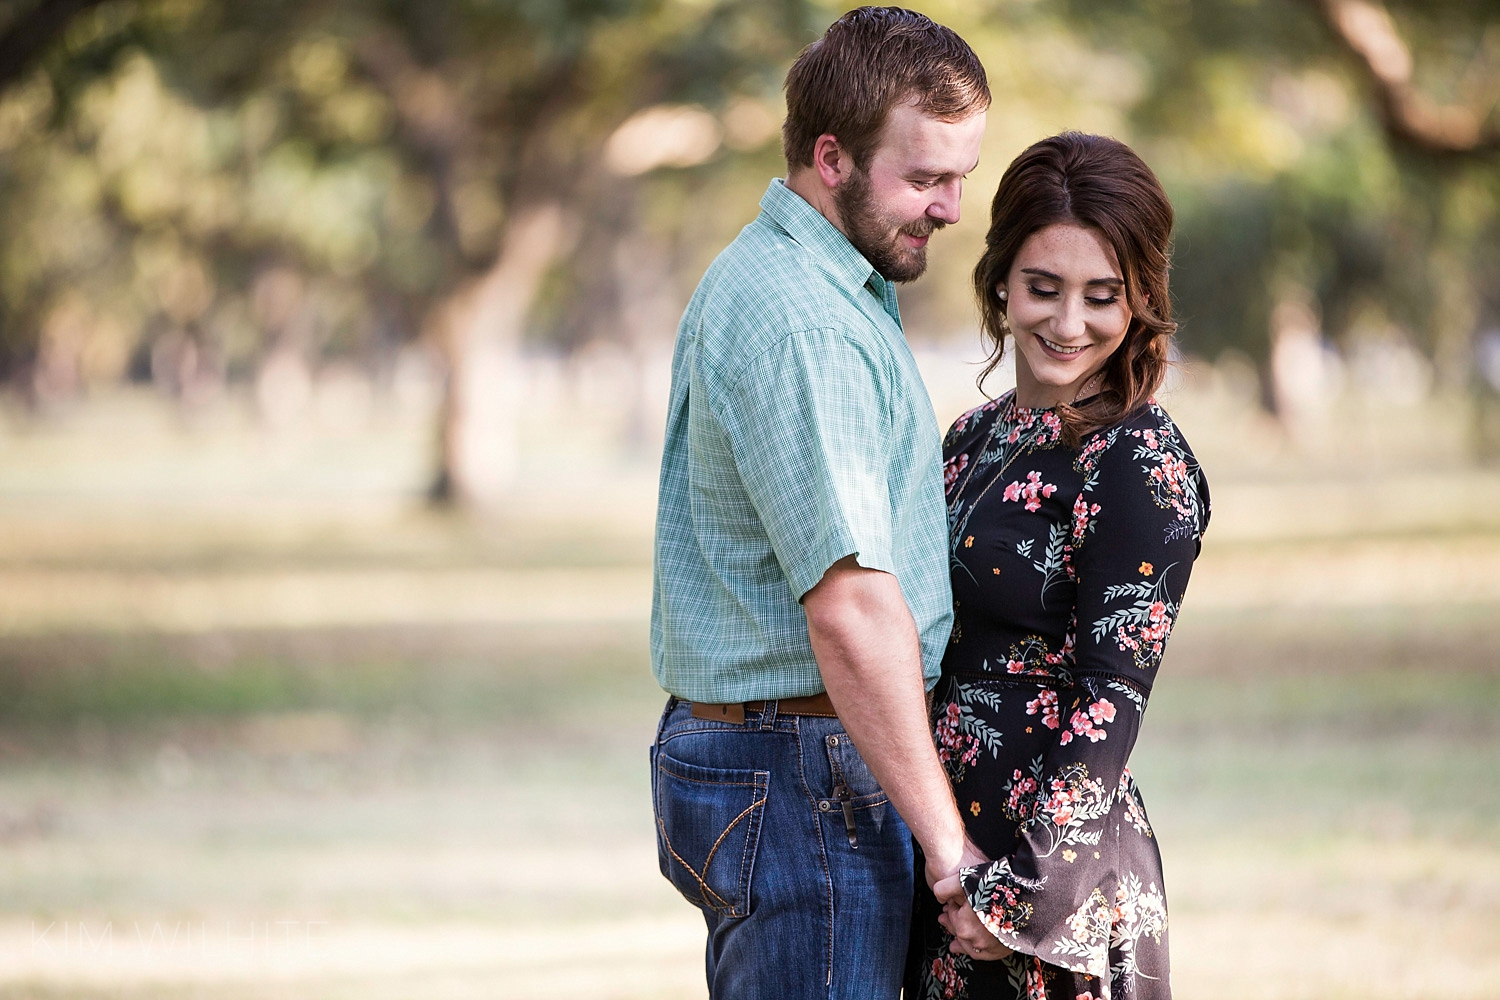 pecan-orchard-engagement-pictures-113.jpg